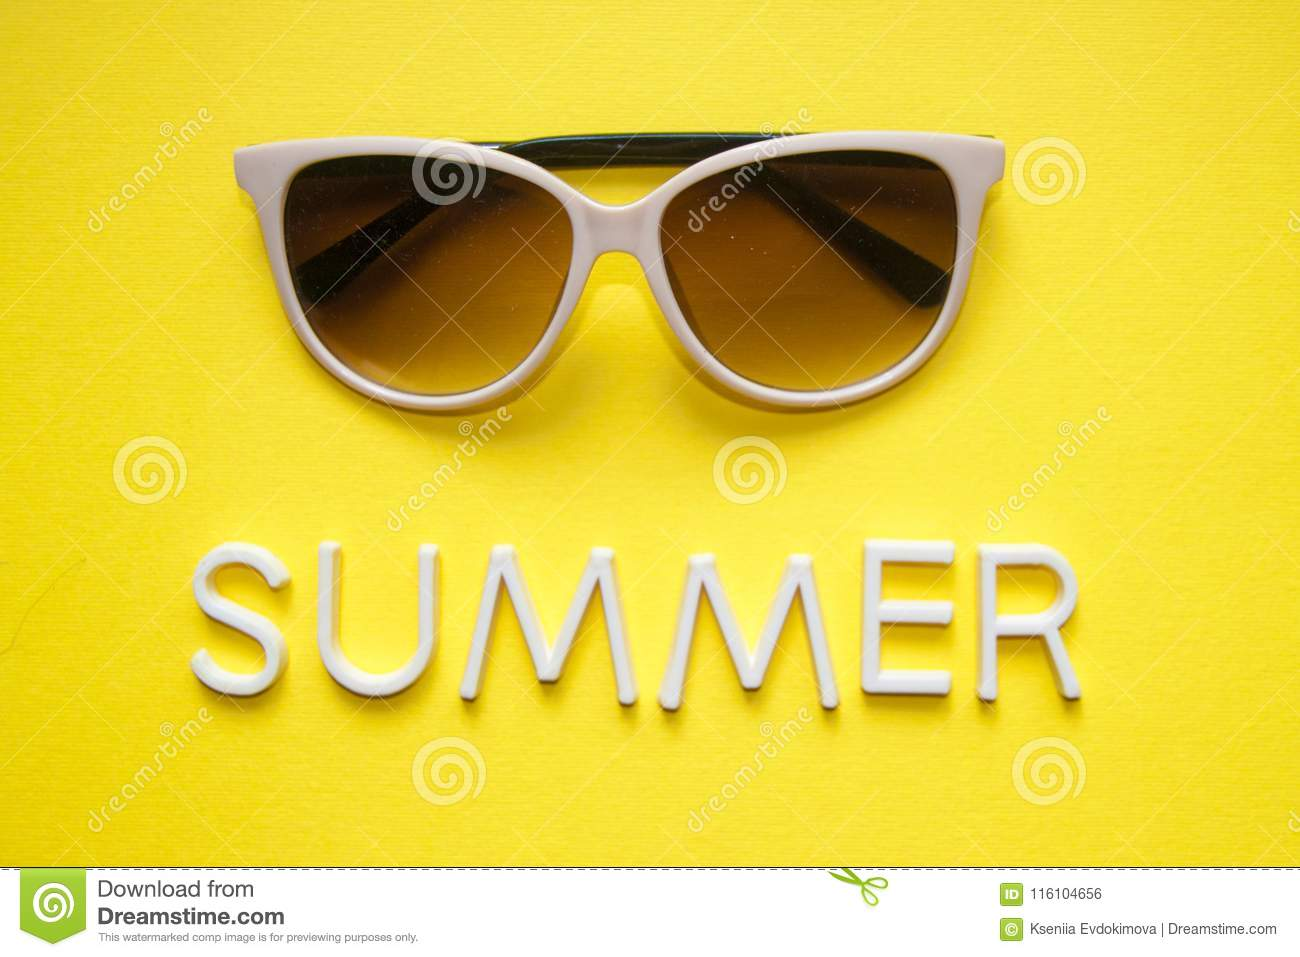 Sunglasses on yellow background and text summer. Top view. Holidays and vacation concept